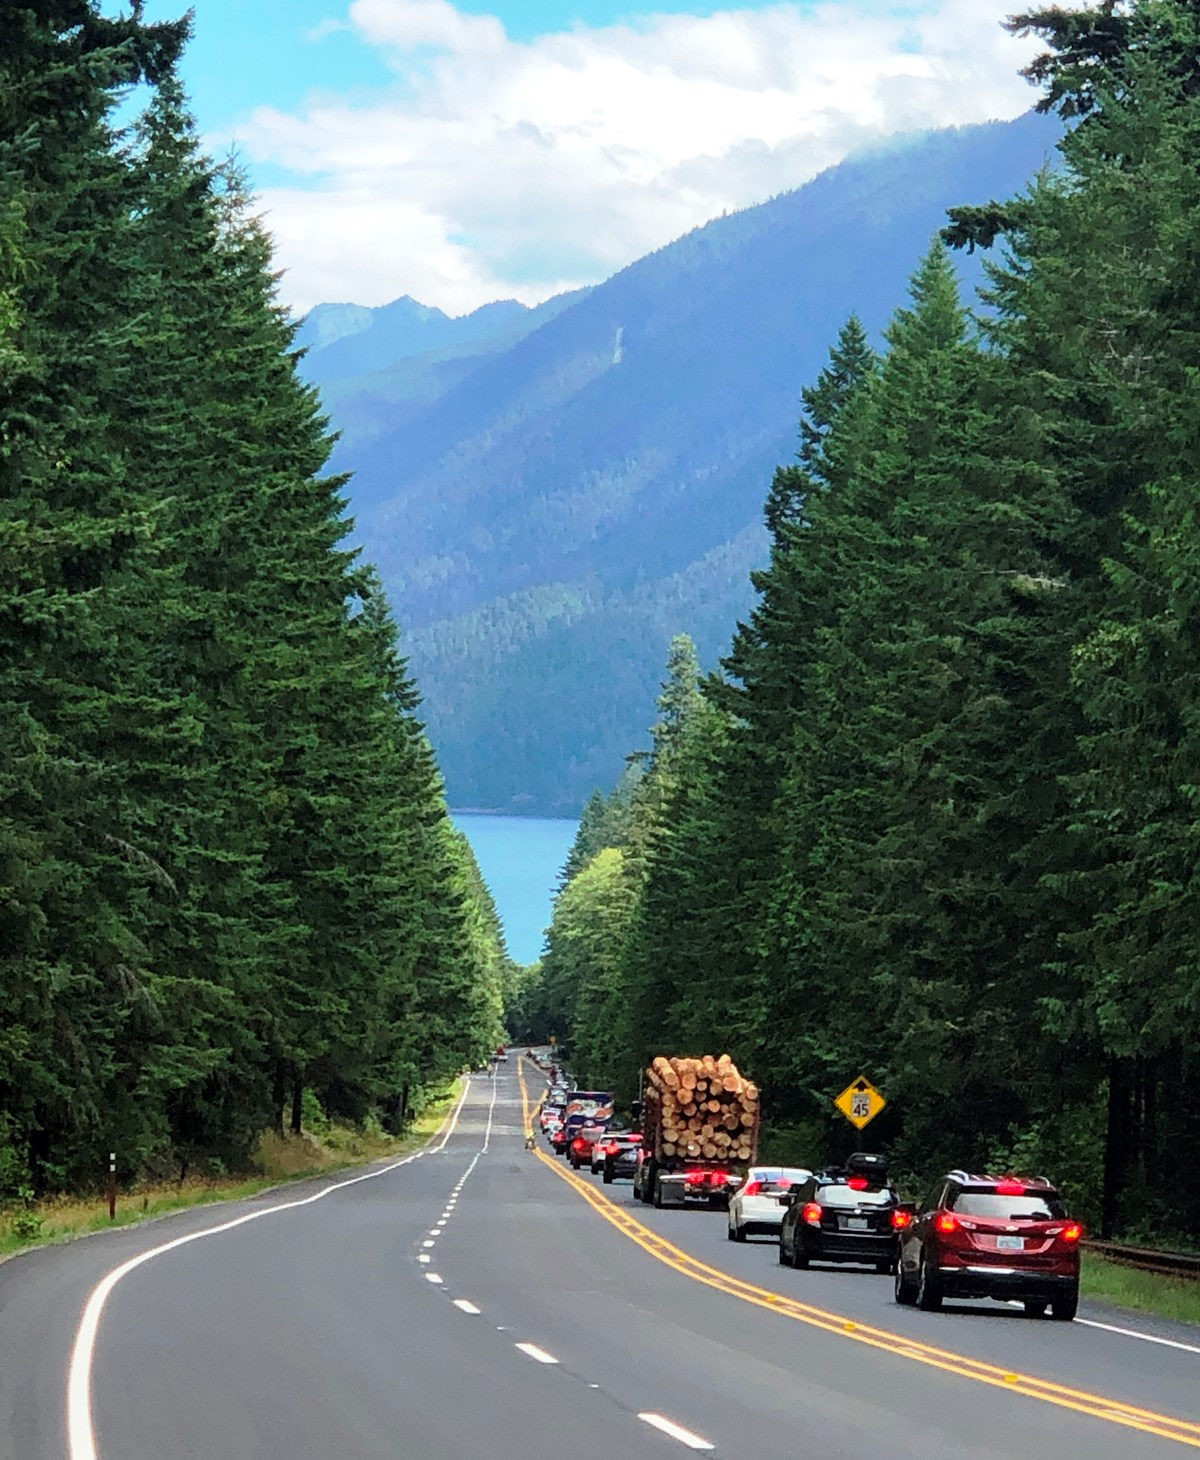 Traffic on Highway 101 at Lake Crescent